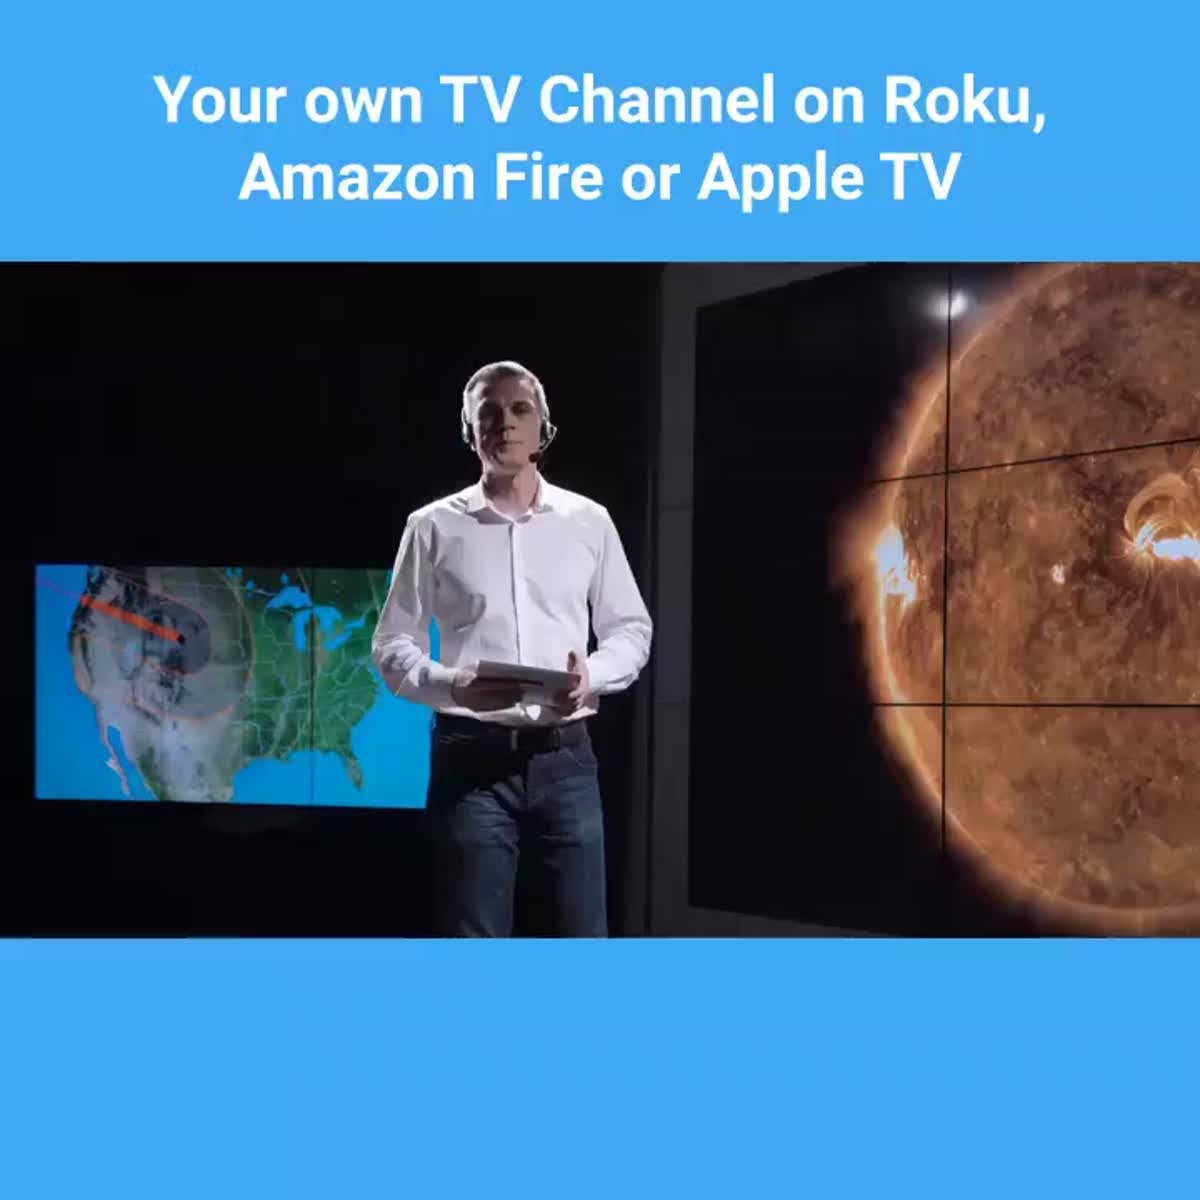 I will develop Roku TV channel for products and services